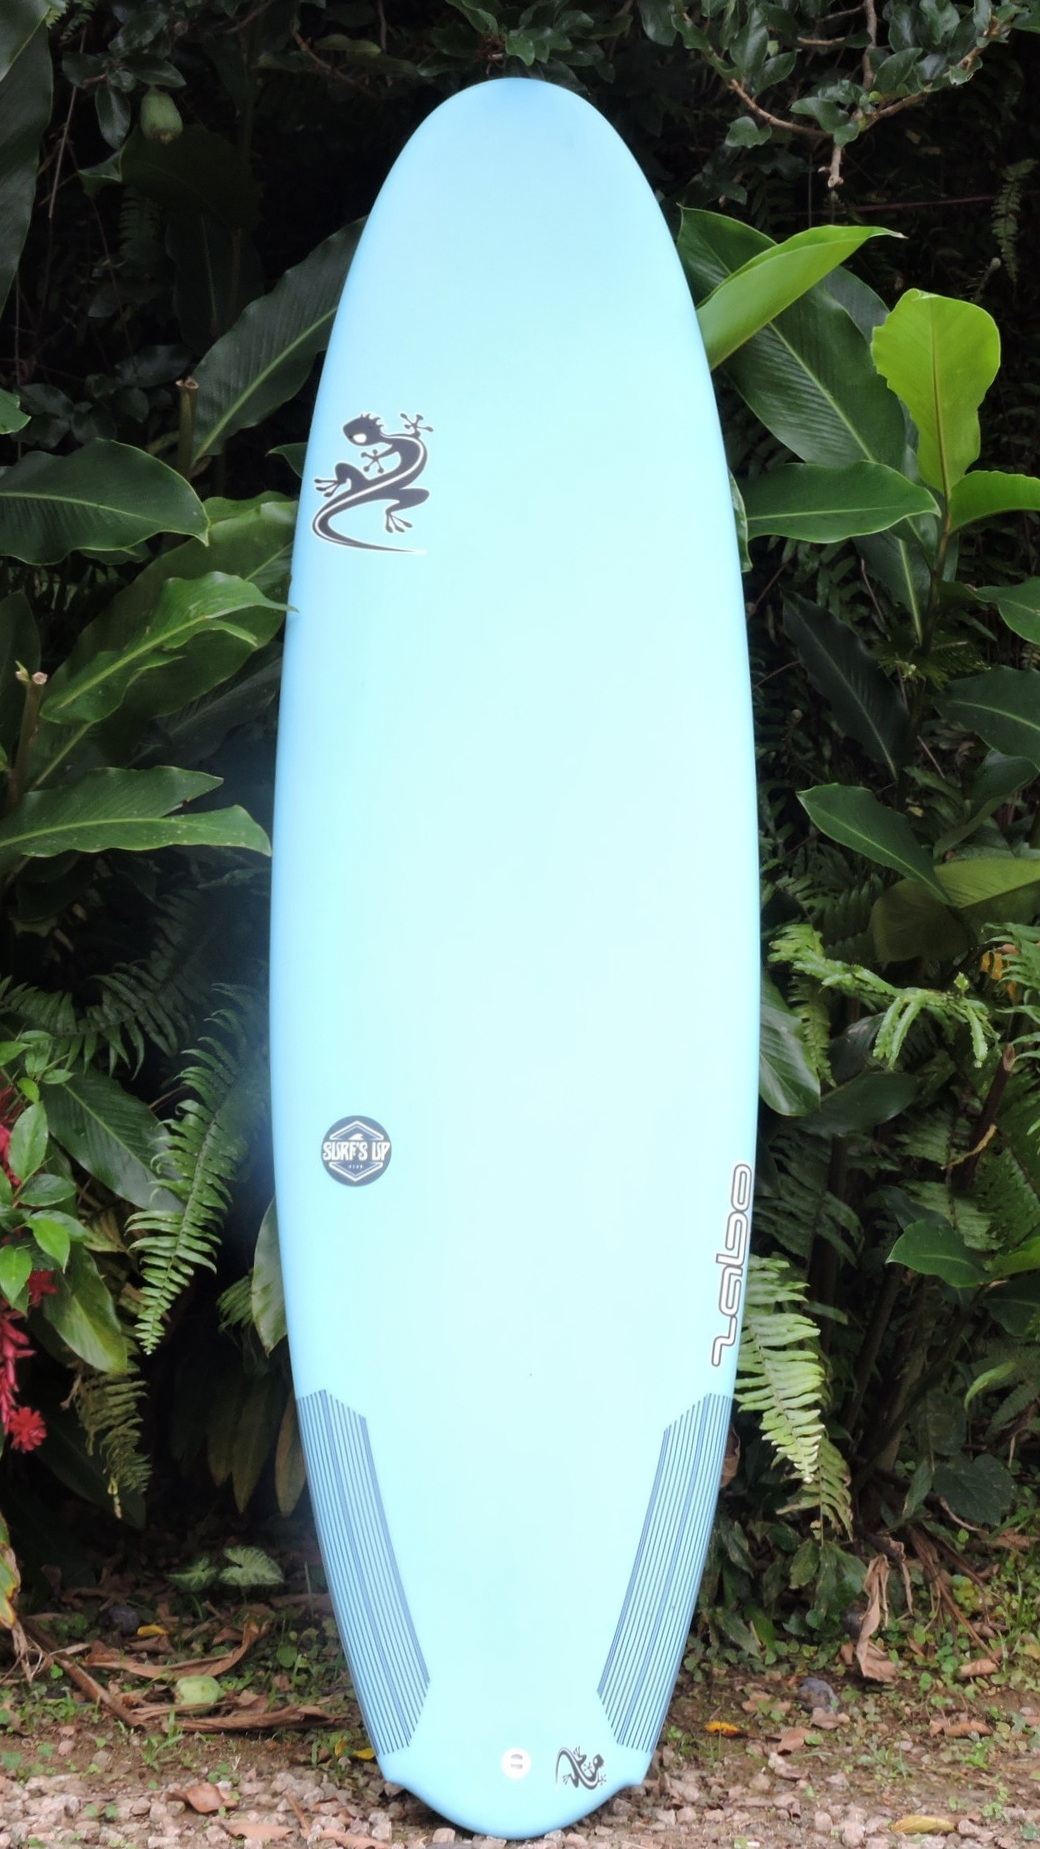 Shark Bomb - Zabo Surfboards5'8